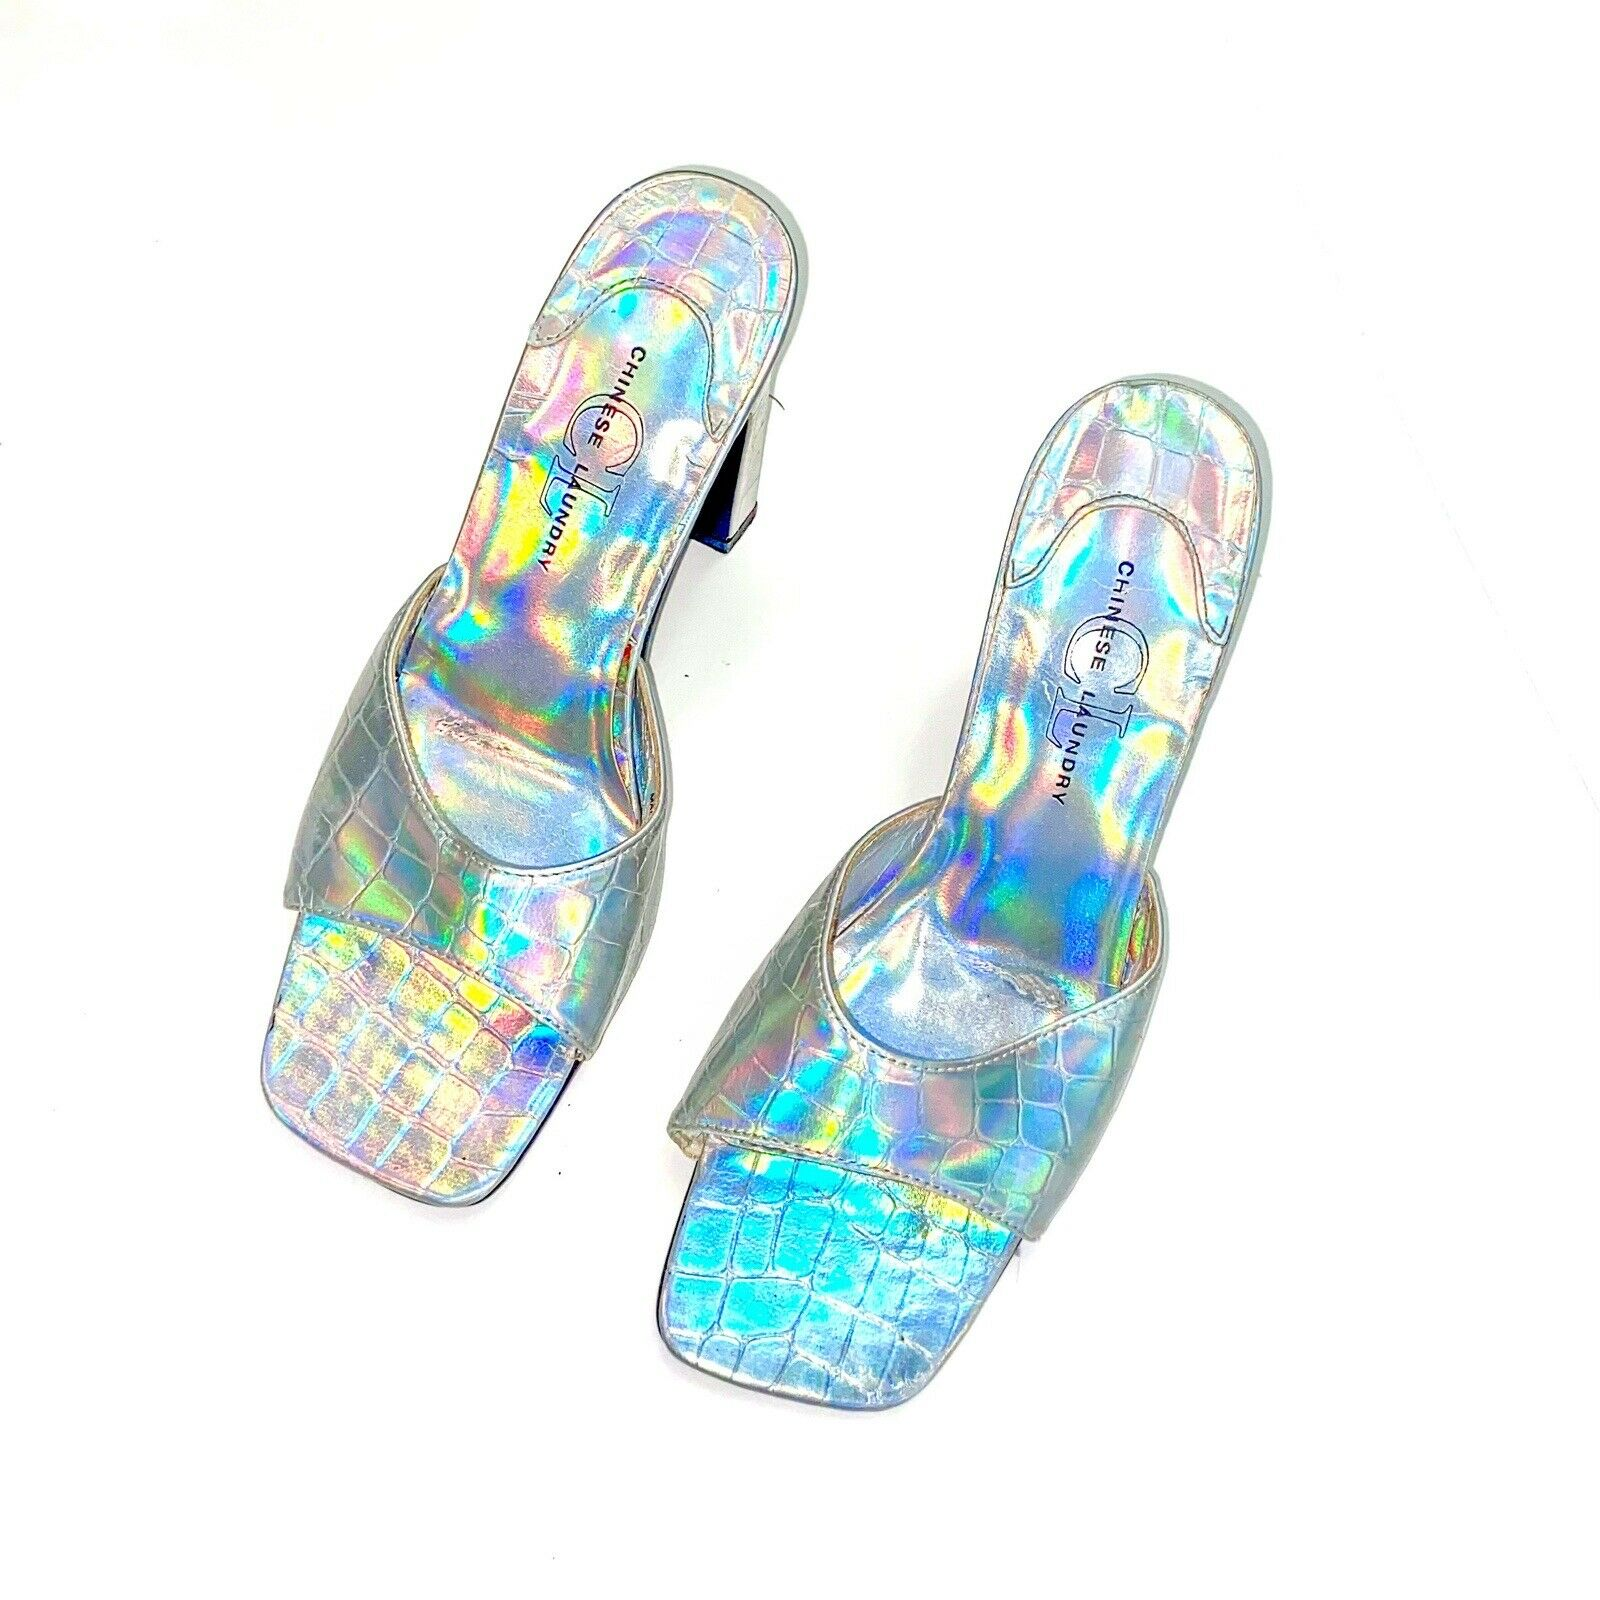 y2k 90s square toe iridescent mules - size 7 - image 2